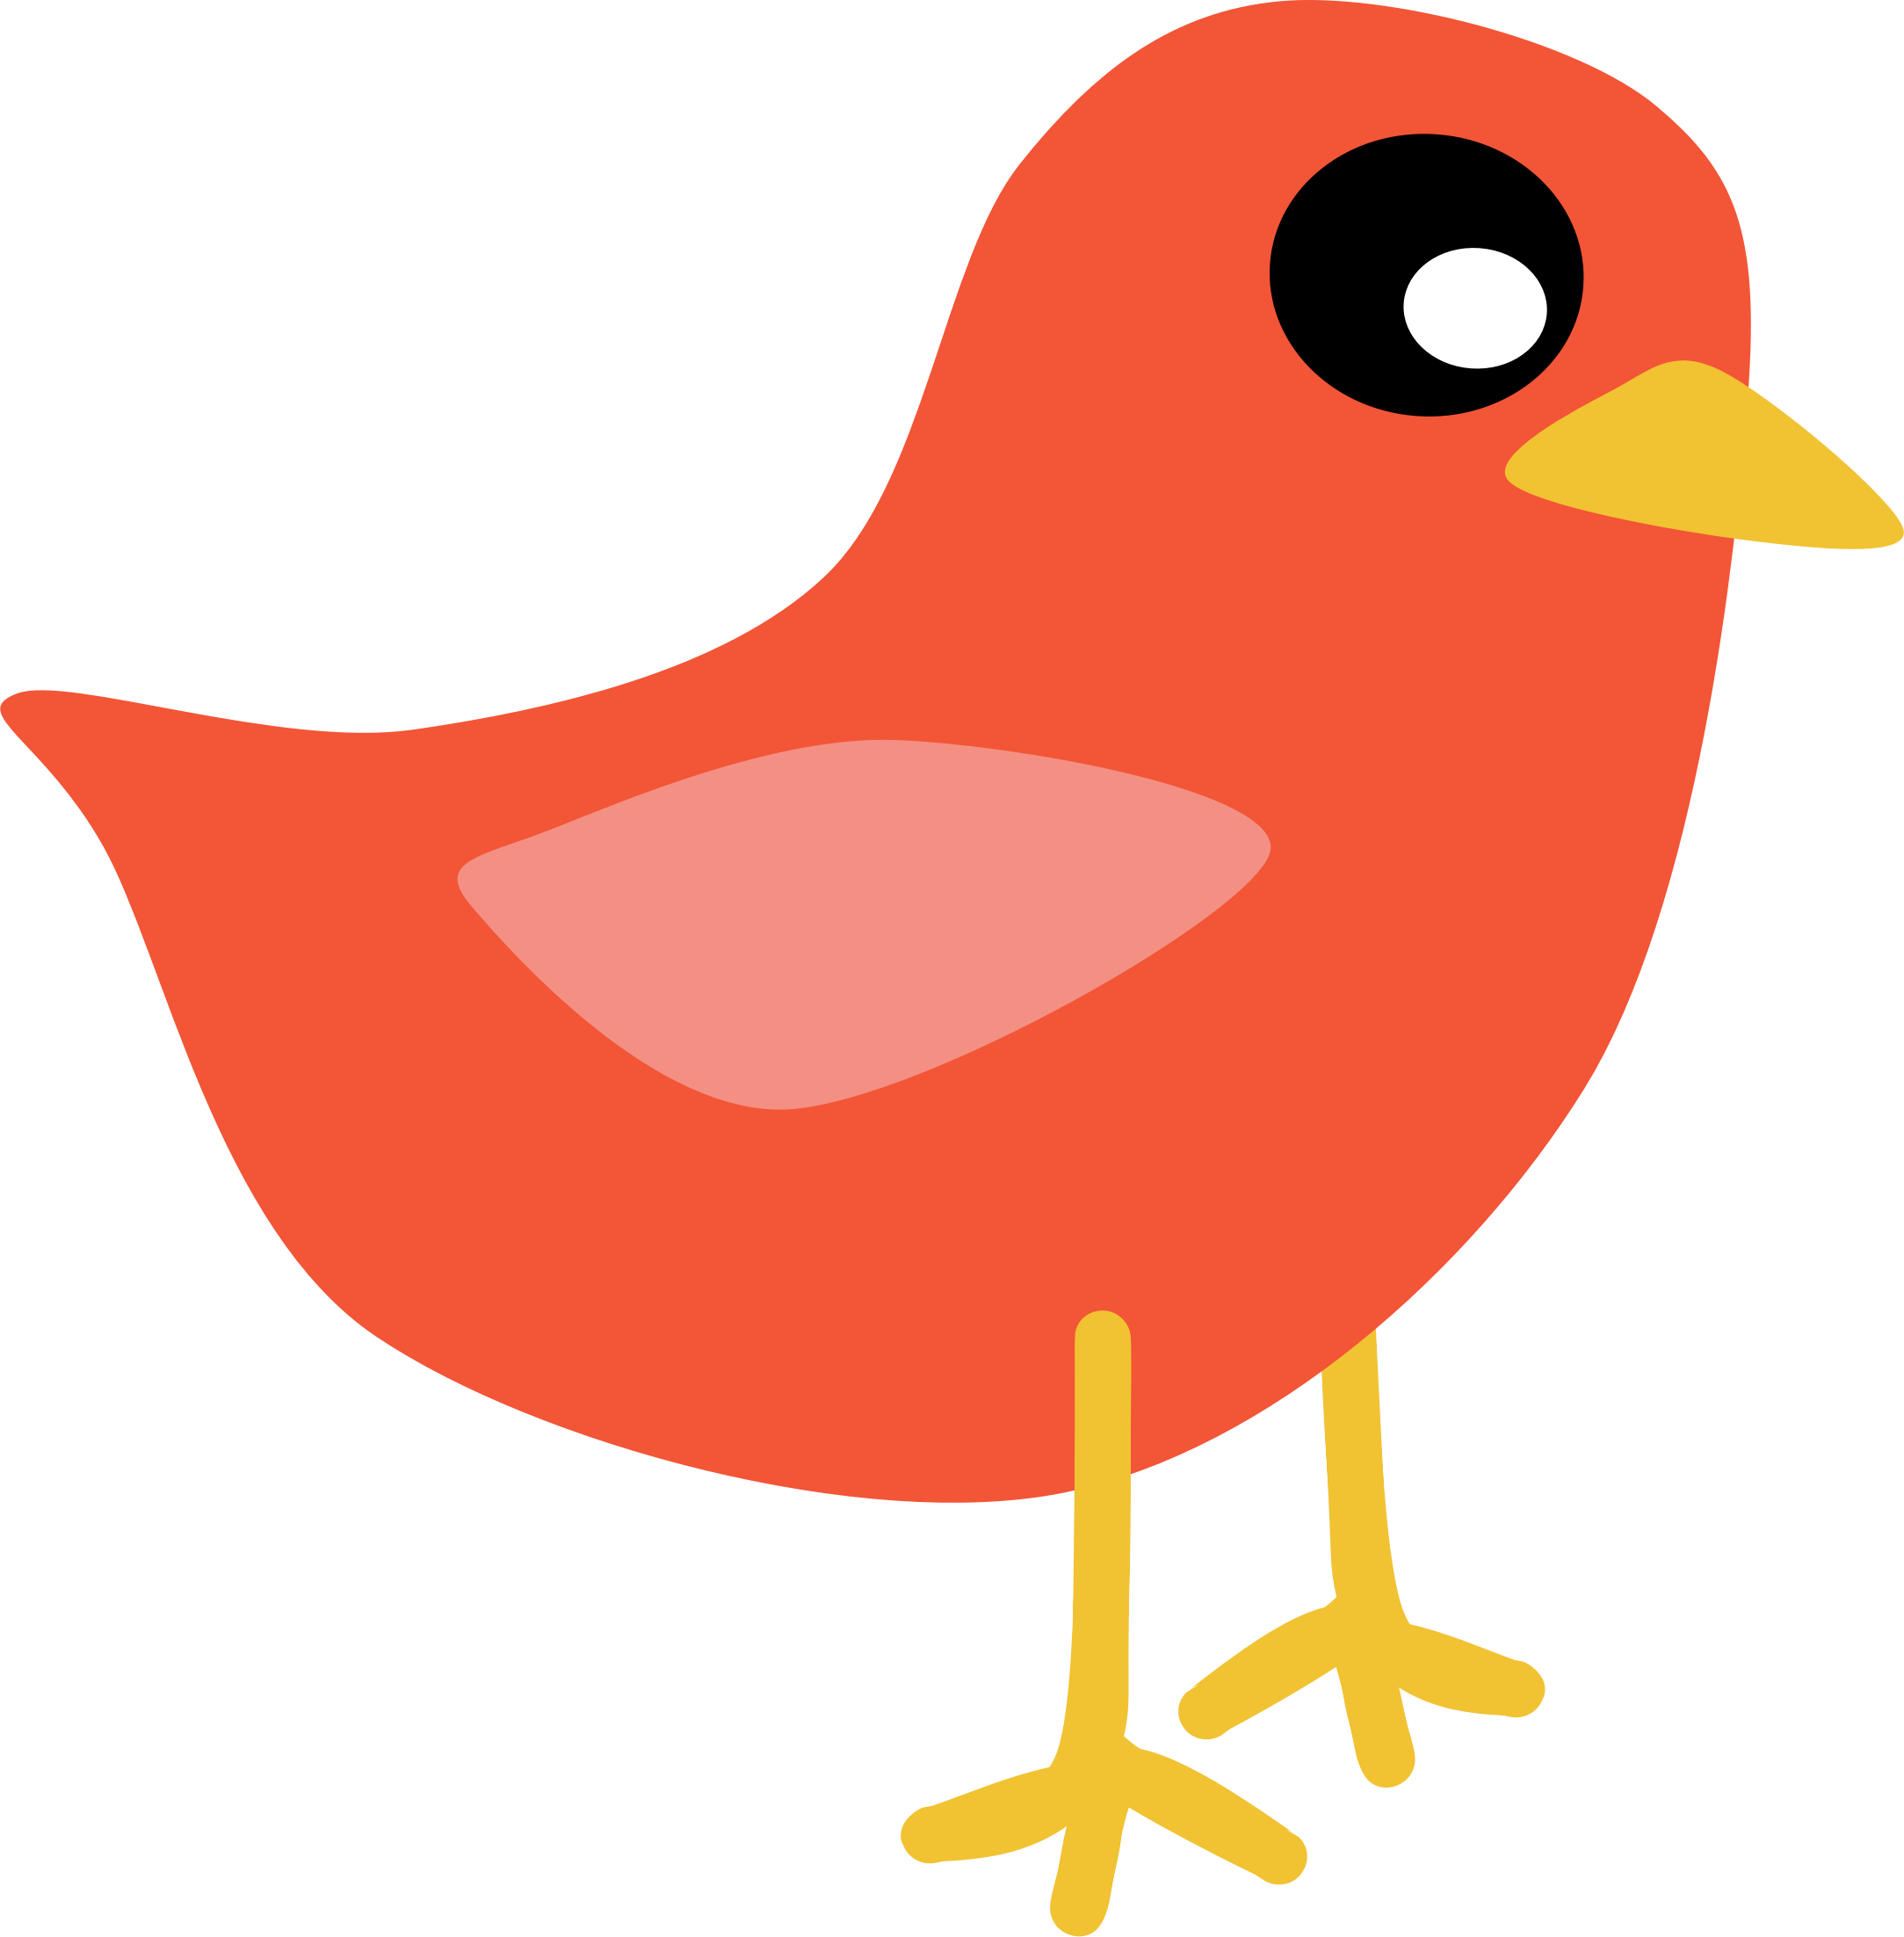 clipart love birds at getdrawings com free for personal use rh getdrawings com cute love birds clipart cute love birds clipart